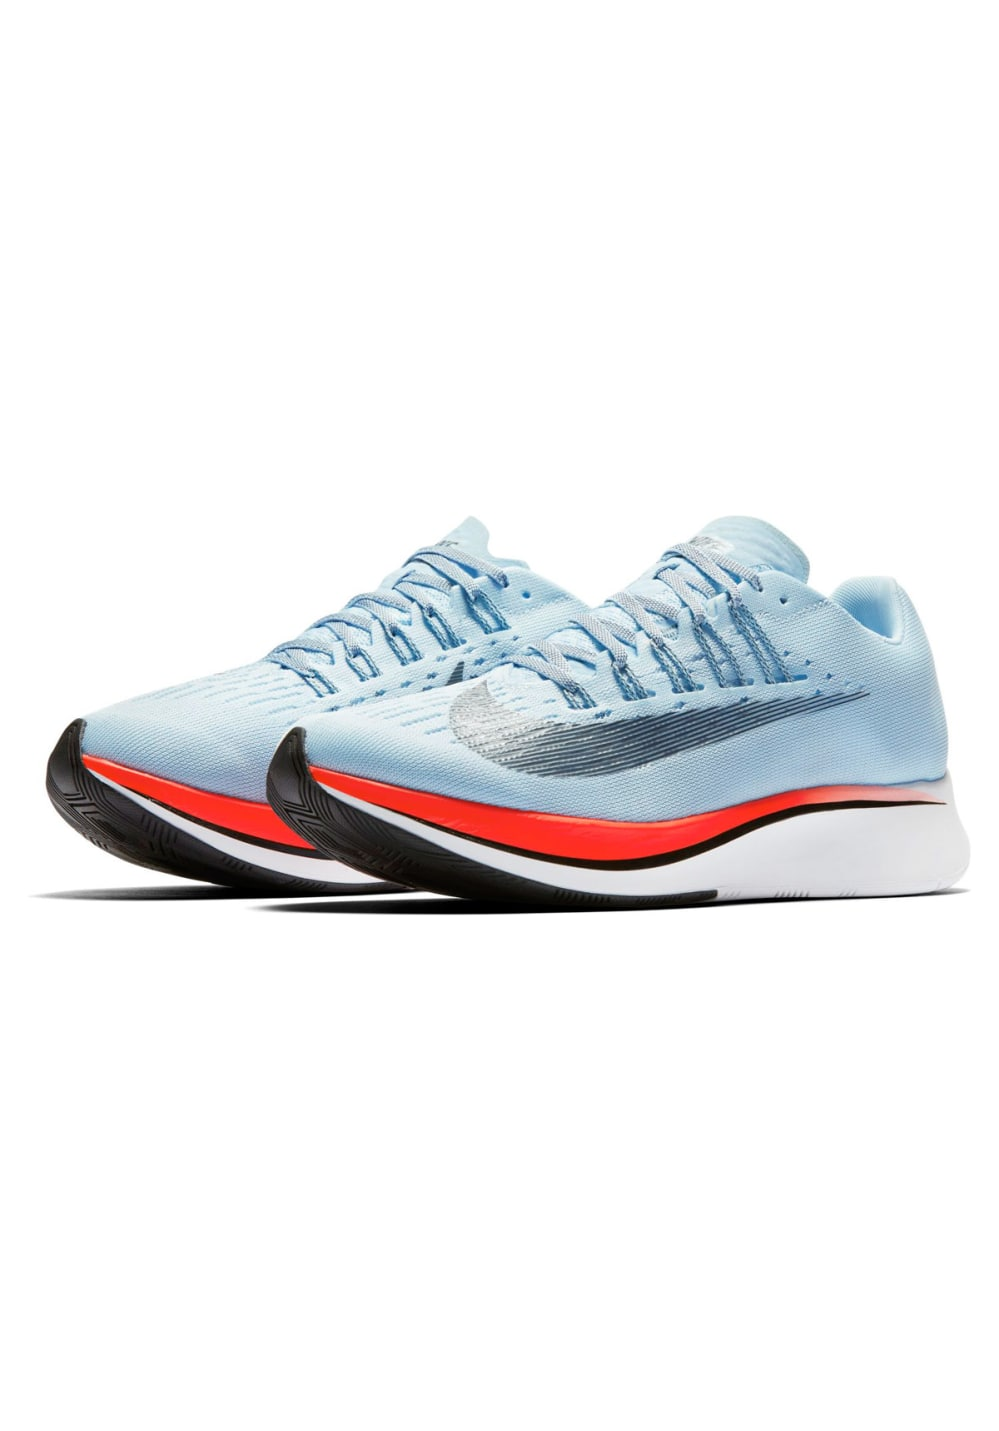 info for c55e5 ceff4 Nike Zoom Fly - Running shoes for Women - Blue